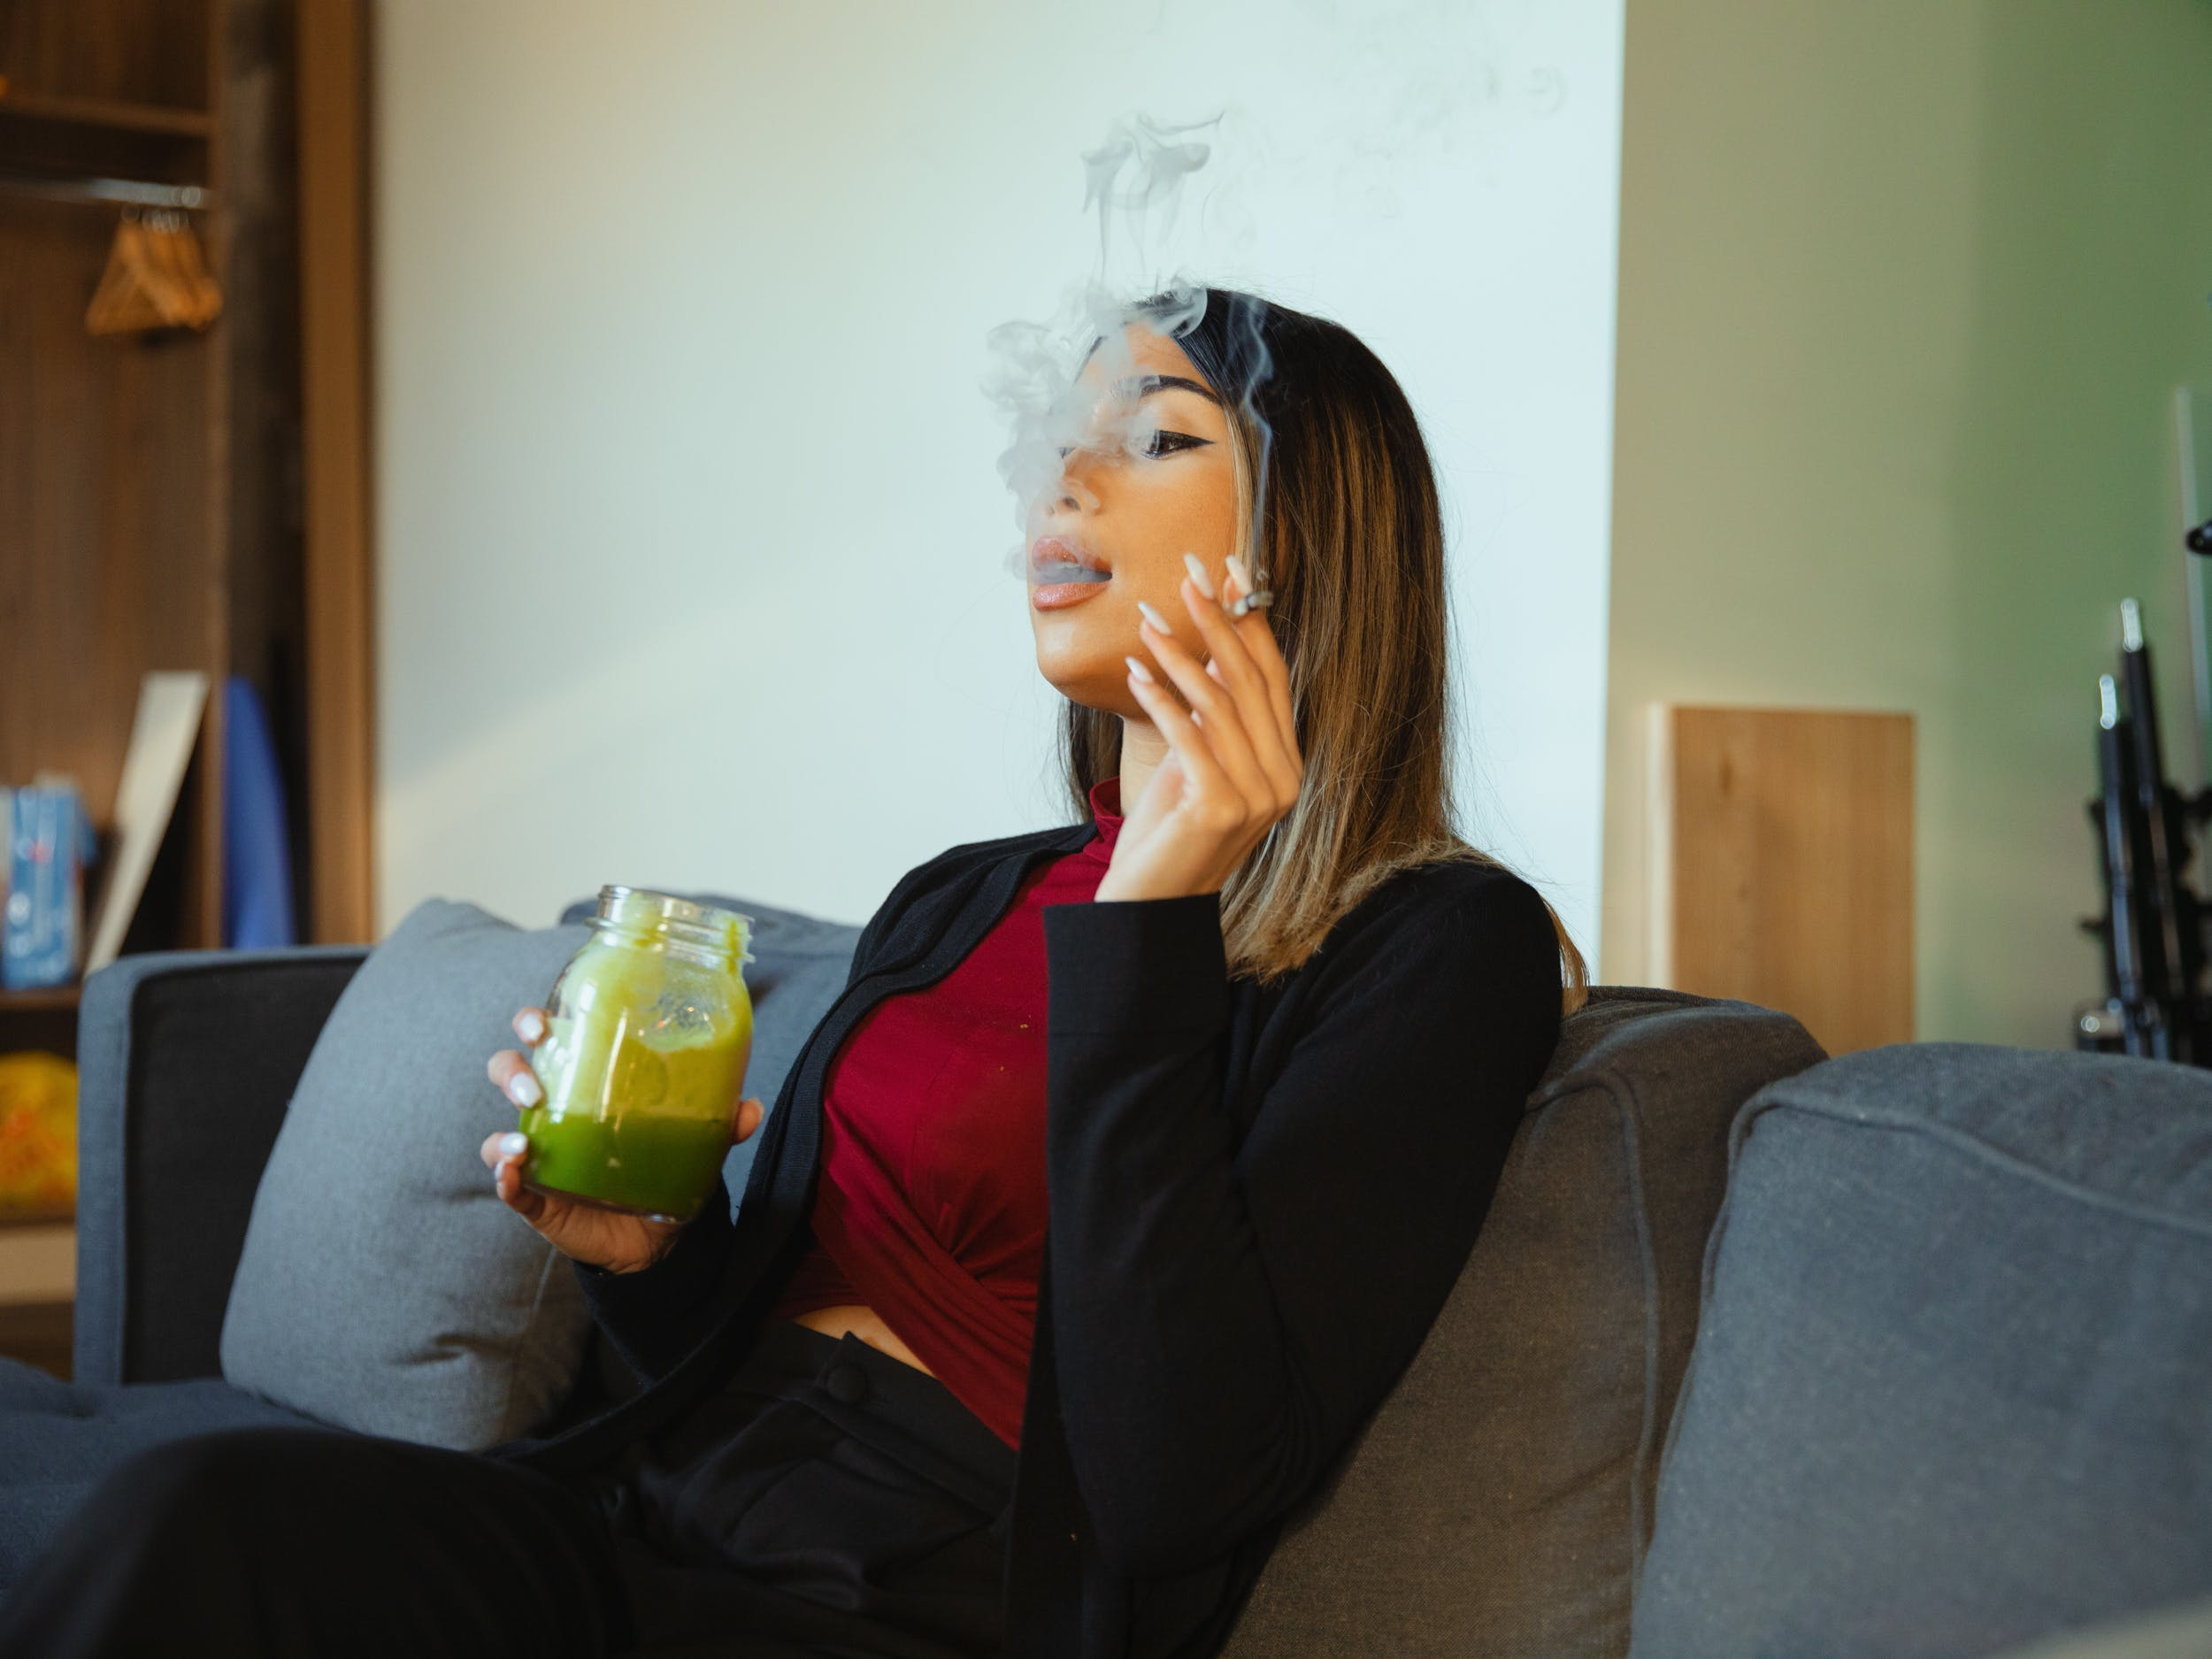 A woman sits on a couch smoking a joint and drinking a mason jar full of Bhang. Learn how to make bhang at home with this guide.